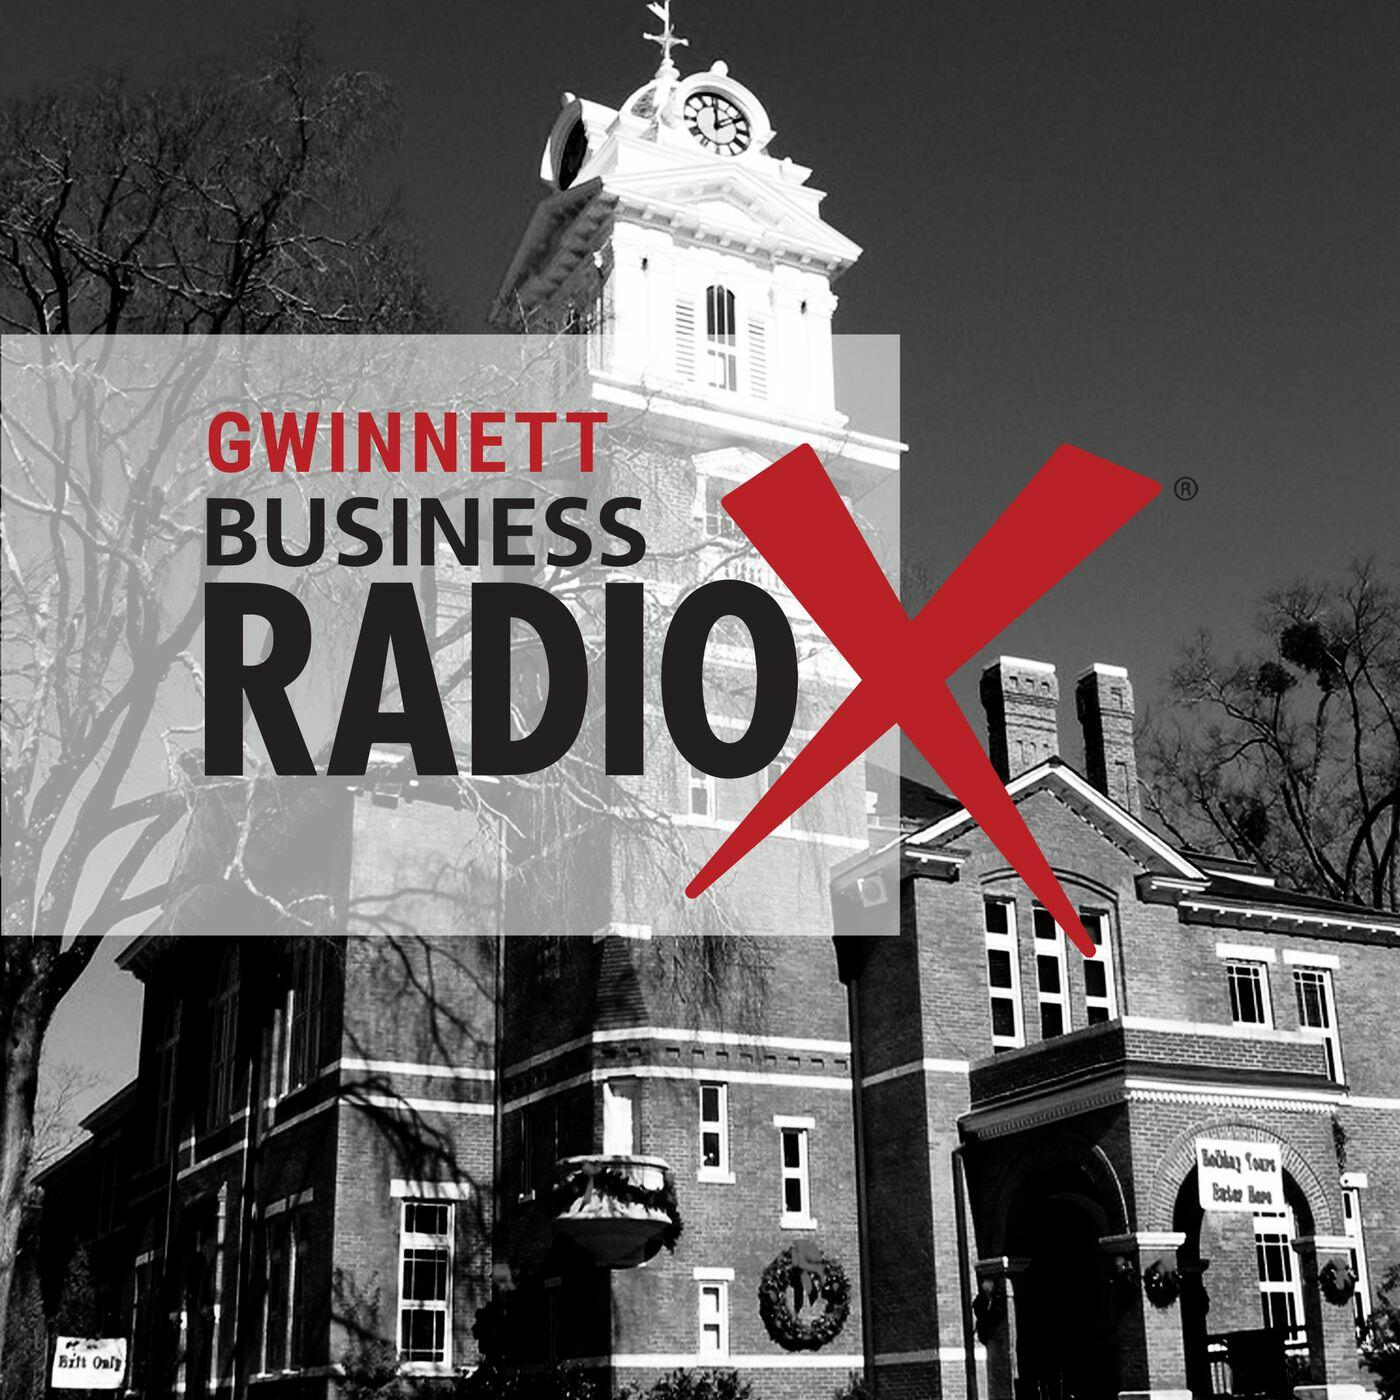 Listen to the Gwinnett Business Radio Episode - MARKETING MATTERS WITH RYAN SAUERS: Mayor Allison Wilkerson and Amanda Leftwich from the City of Grayson on iHeartRadio | iHeartRadio